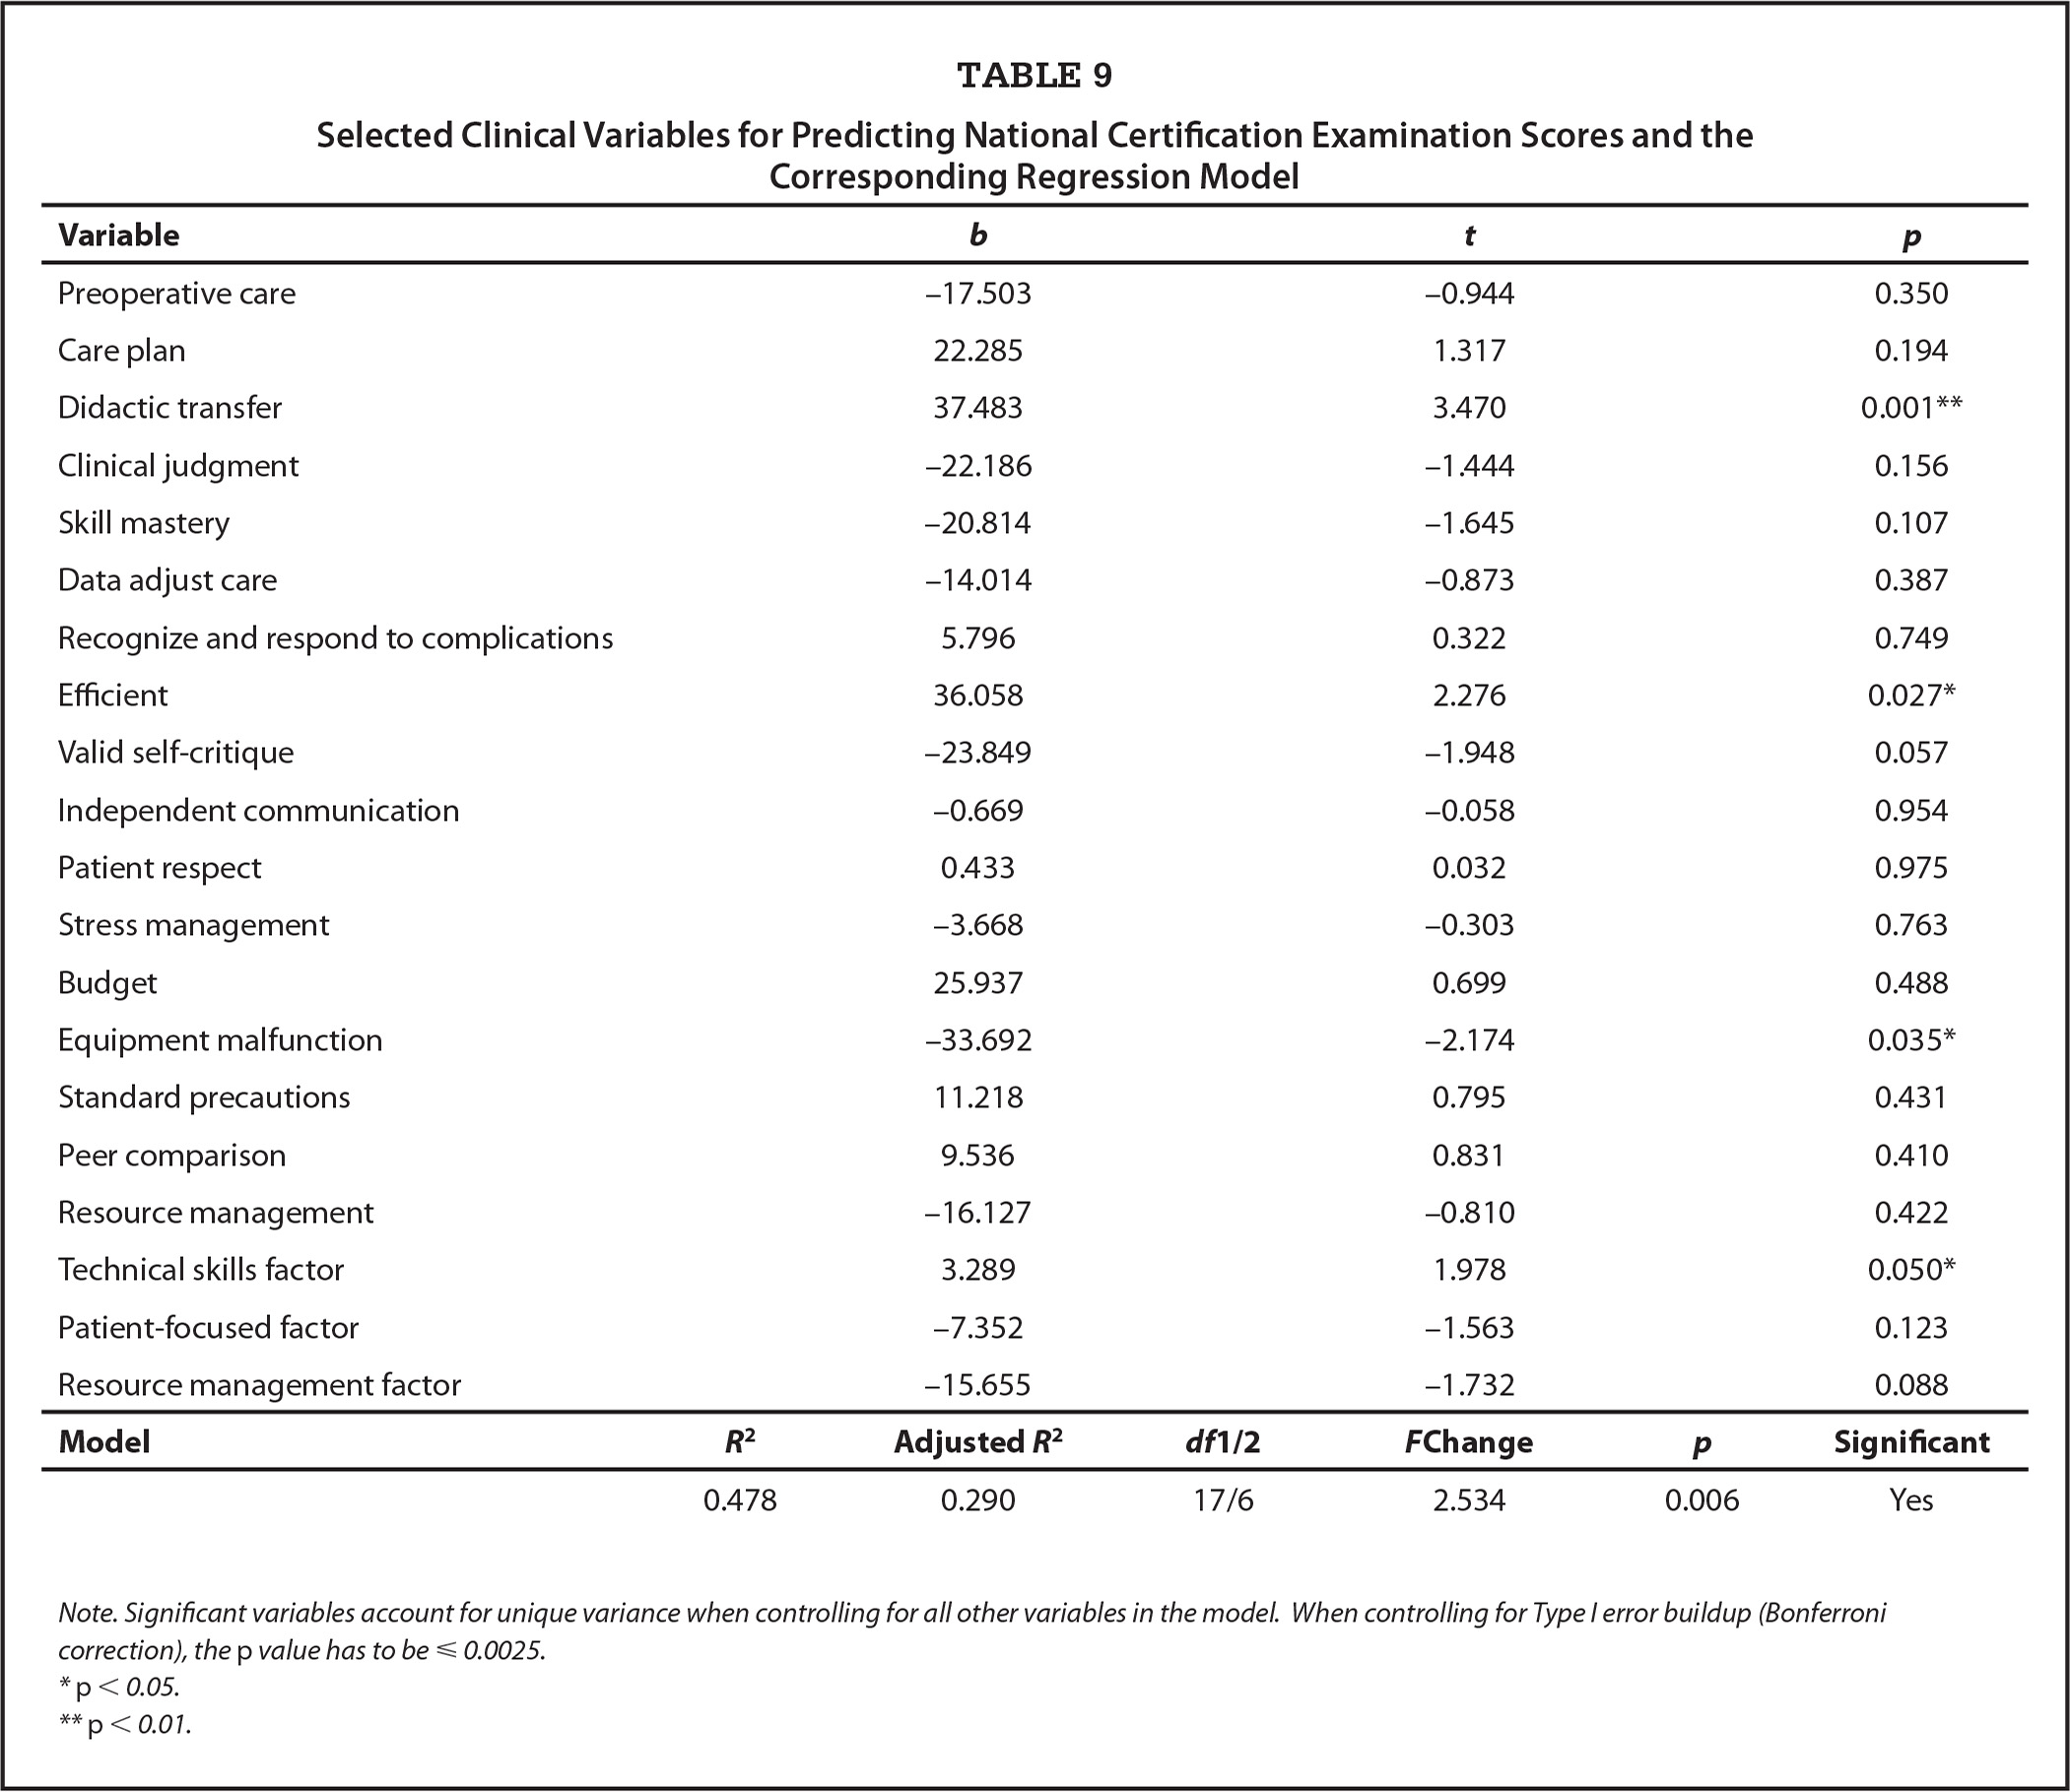 Selected Clinical Variables for Predicting National Certification Examination Scores and the Corresponding Regression Model